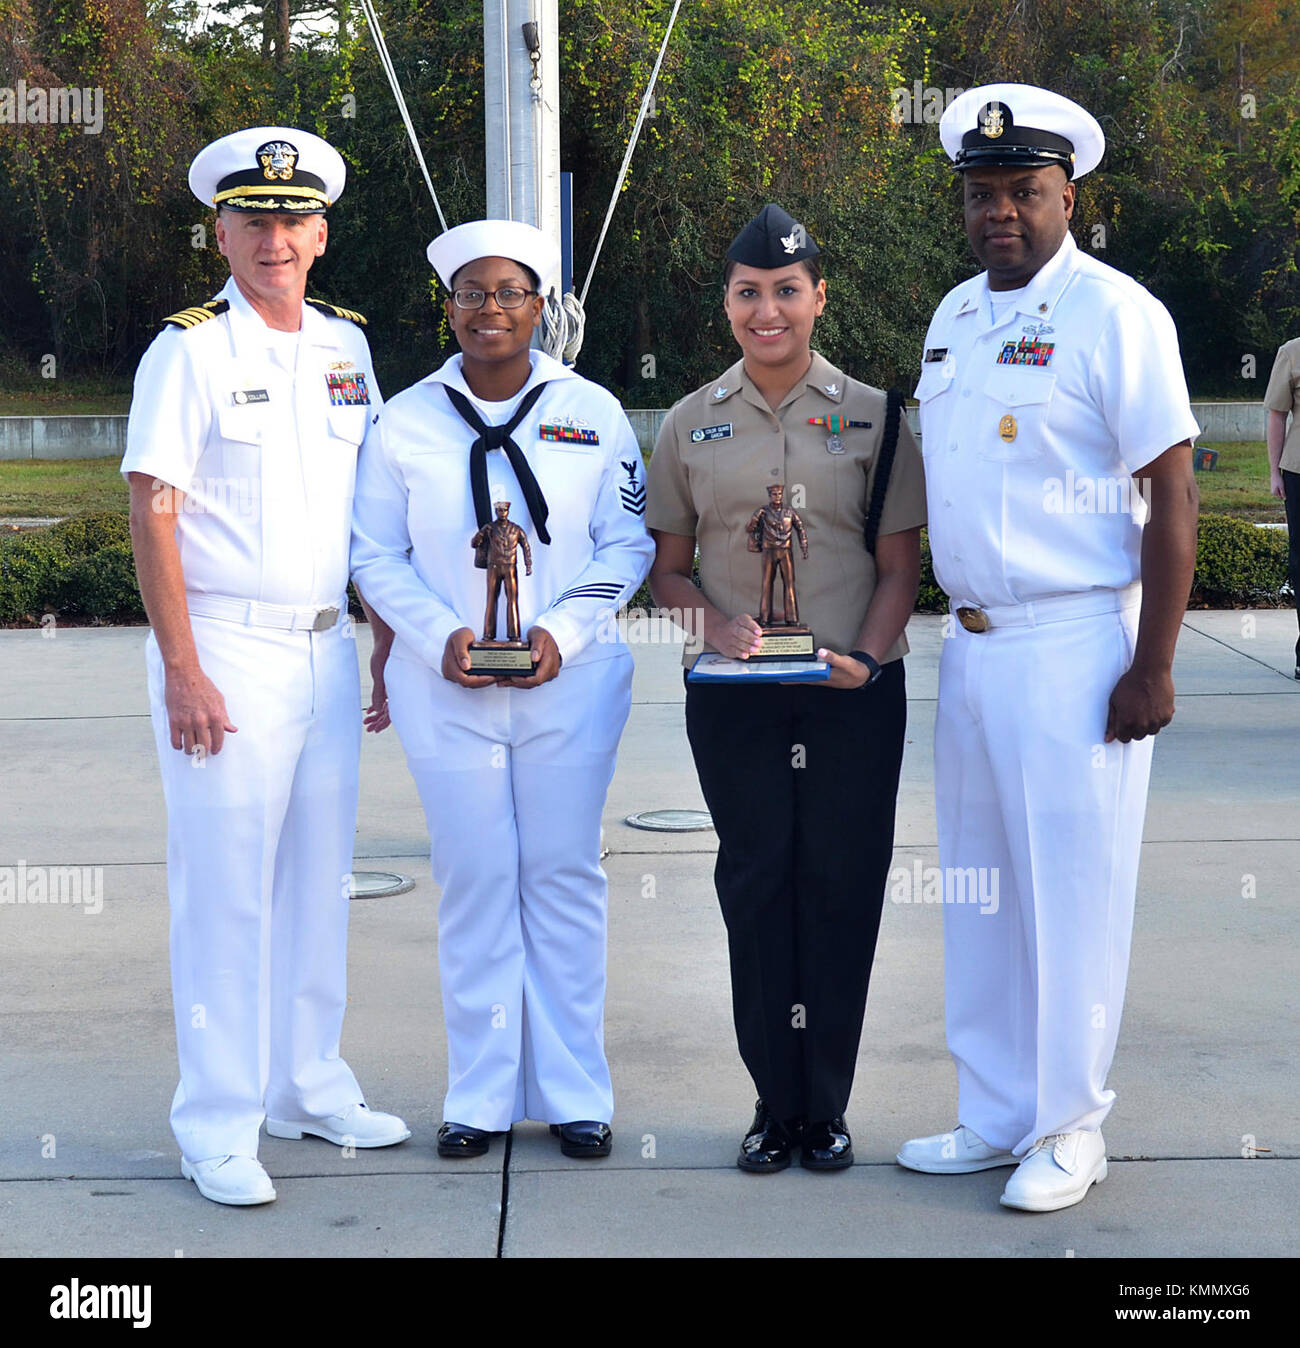 JACKSONVILLE, Fla. (Dec. 1, 2017) – Two Naval Hospital Jacksonville sailors have been selected by Navy Medicine Stock Photo